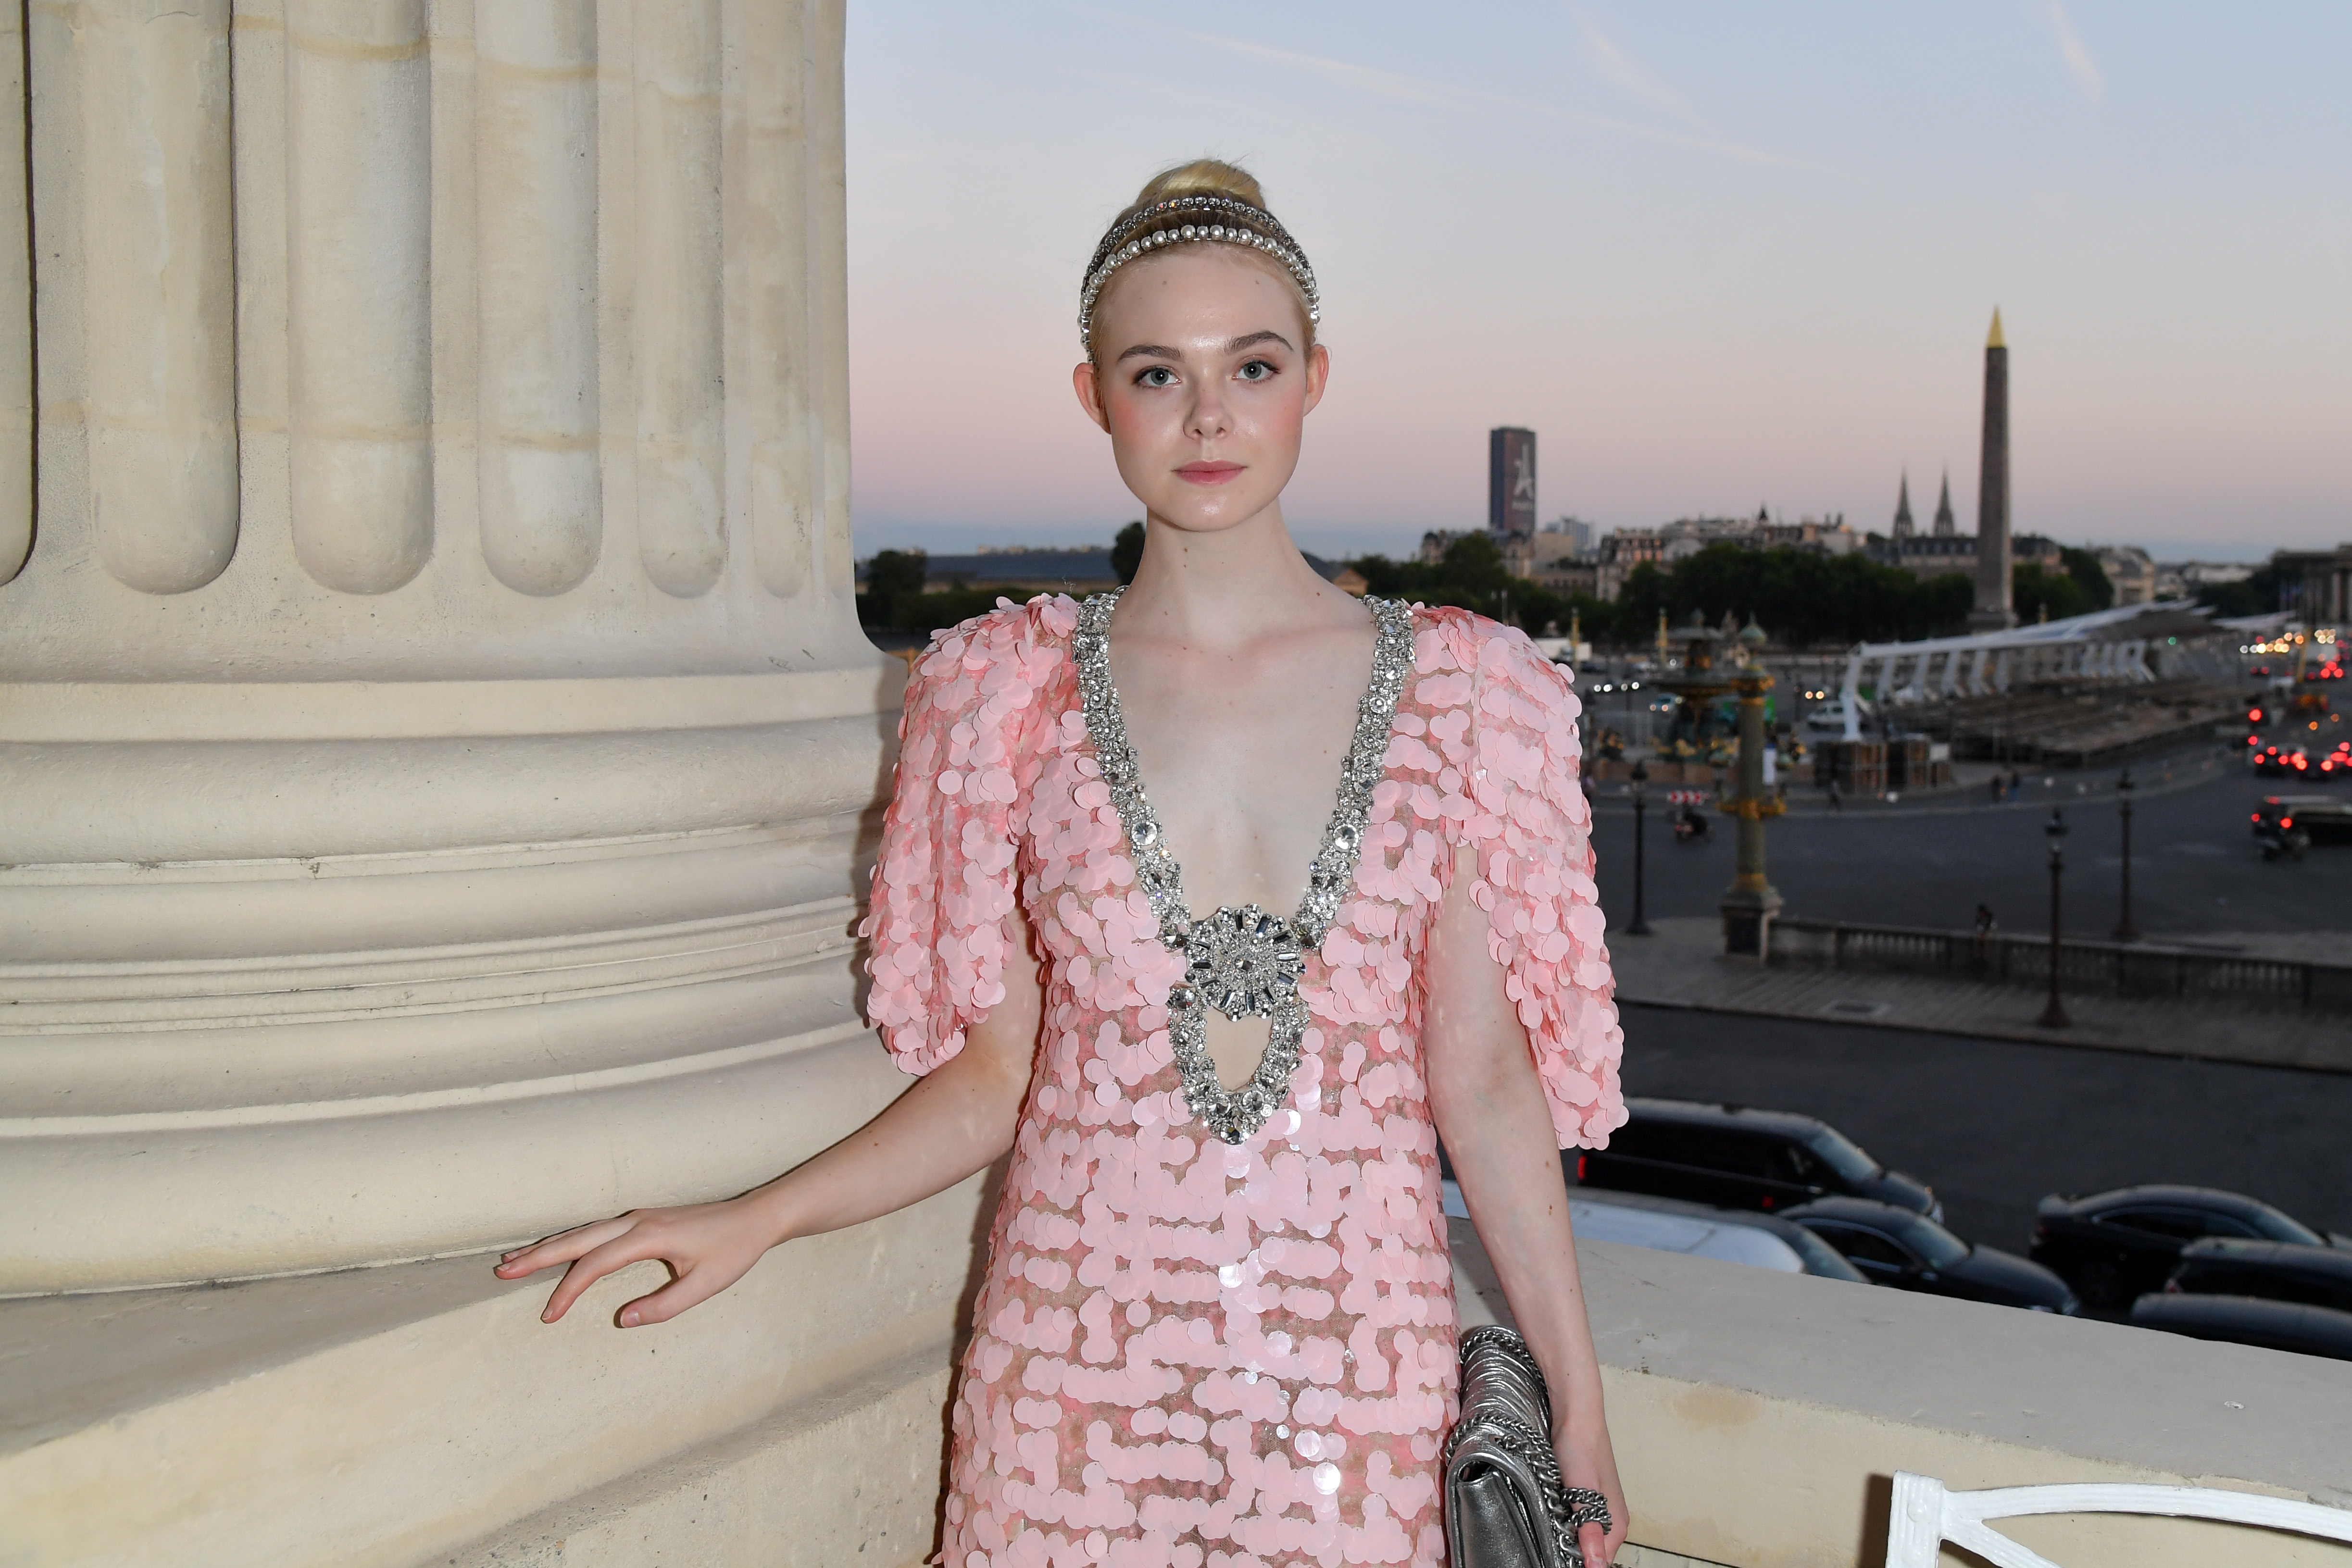 PARIS, FRANCE - JULY 02:  Elle Fanning attends Miu Miu Cruise Collection show as part of Haute Couture Paris Fashion Week on July 2, 2017 in Paris, France.  (Photo by Dominique Charriau/Getty Images for Miu Miu) *** Local Caption *** Elle Fanning